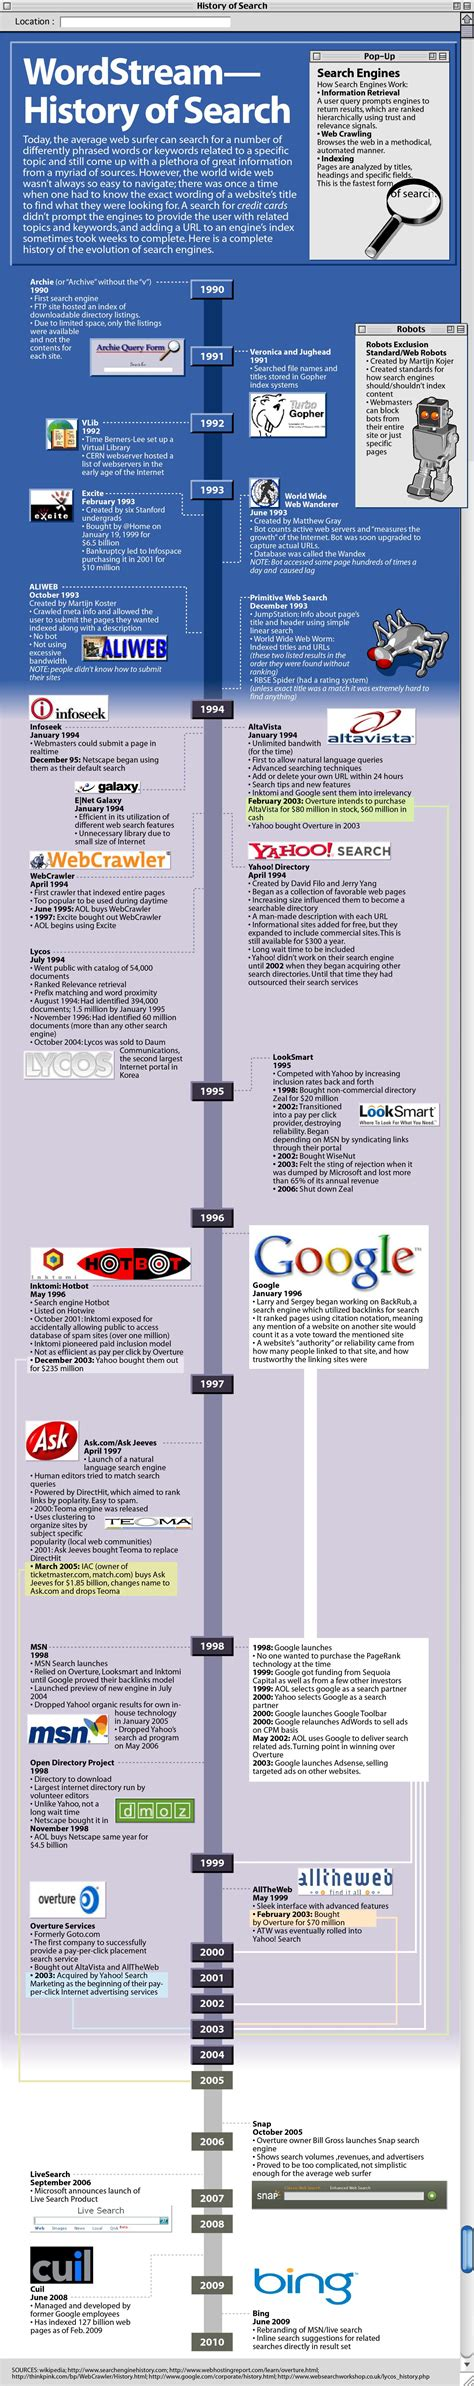 Search Of History Of Search Engines Chronological List Of Search Engines Infographic